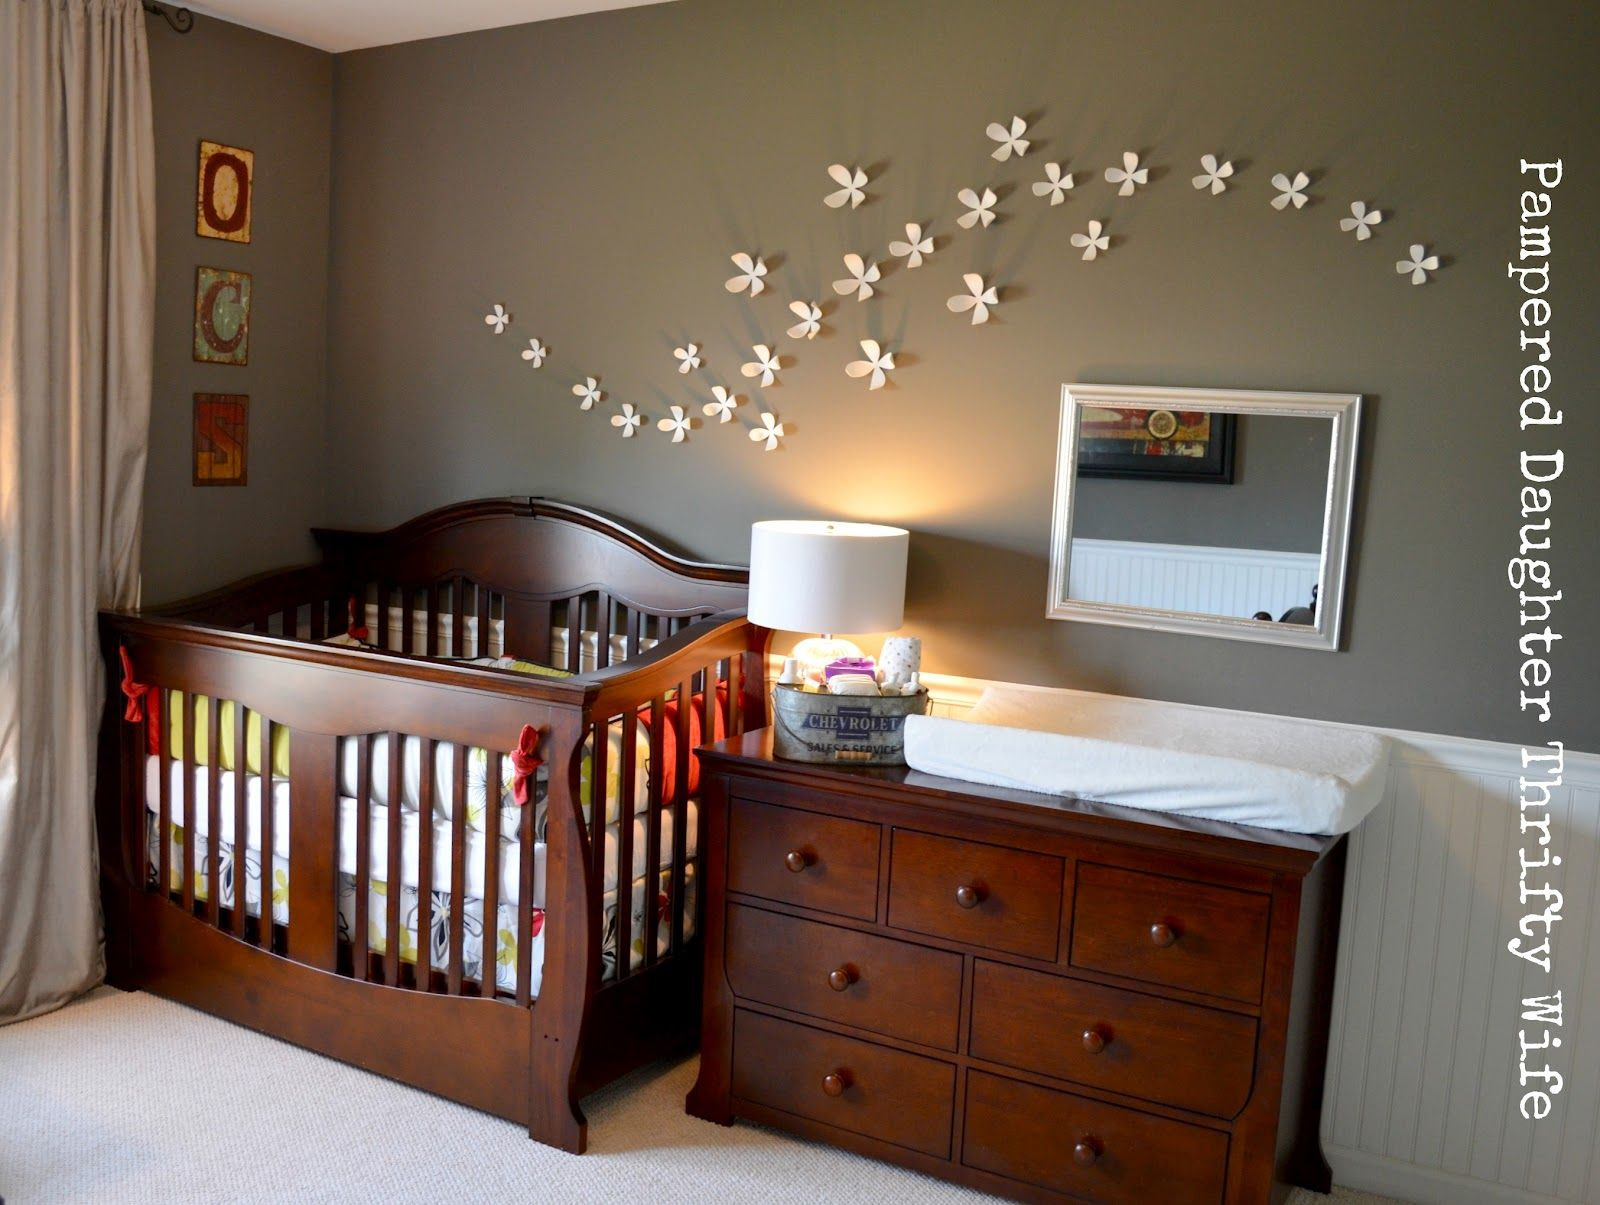 17 best images about nursery on pinterest - Baby Bedroom Theme Ideas